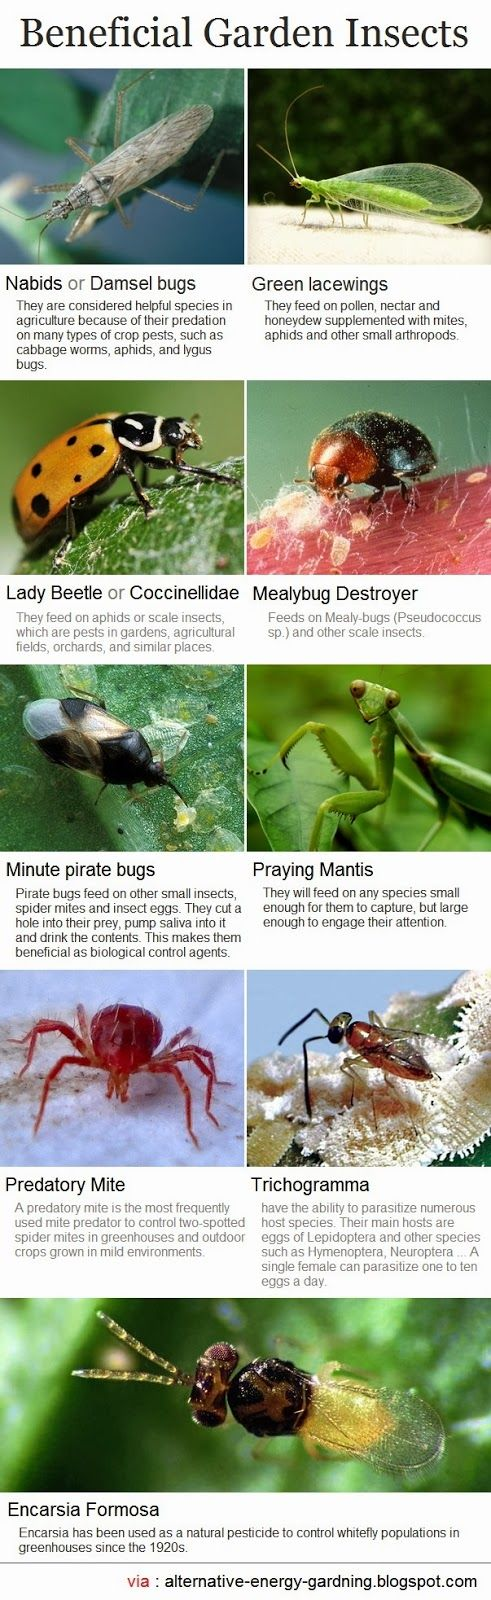 Beneficial Insects Infographic